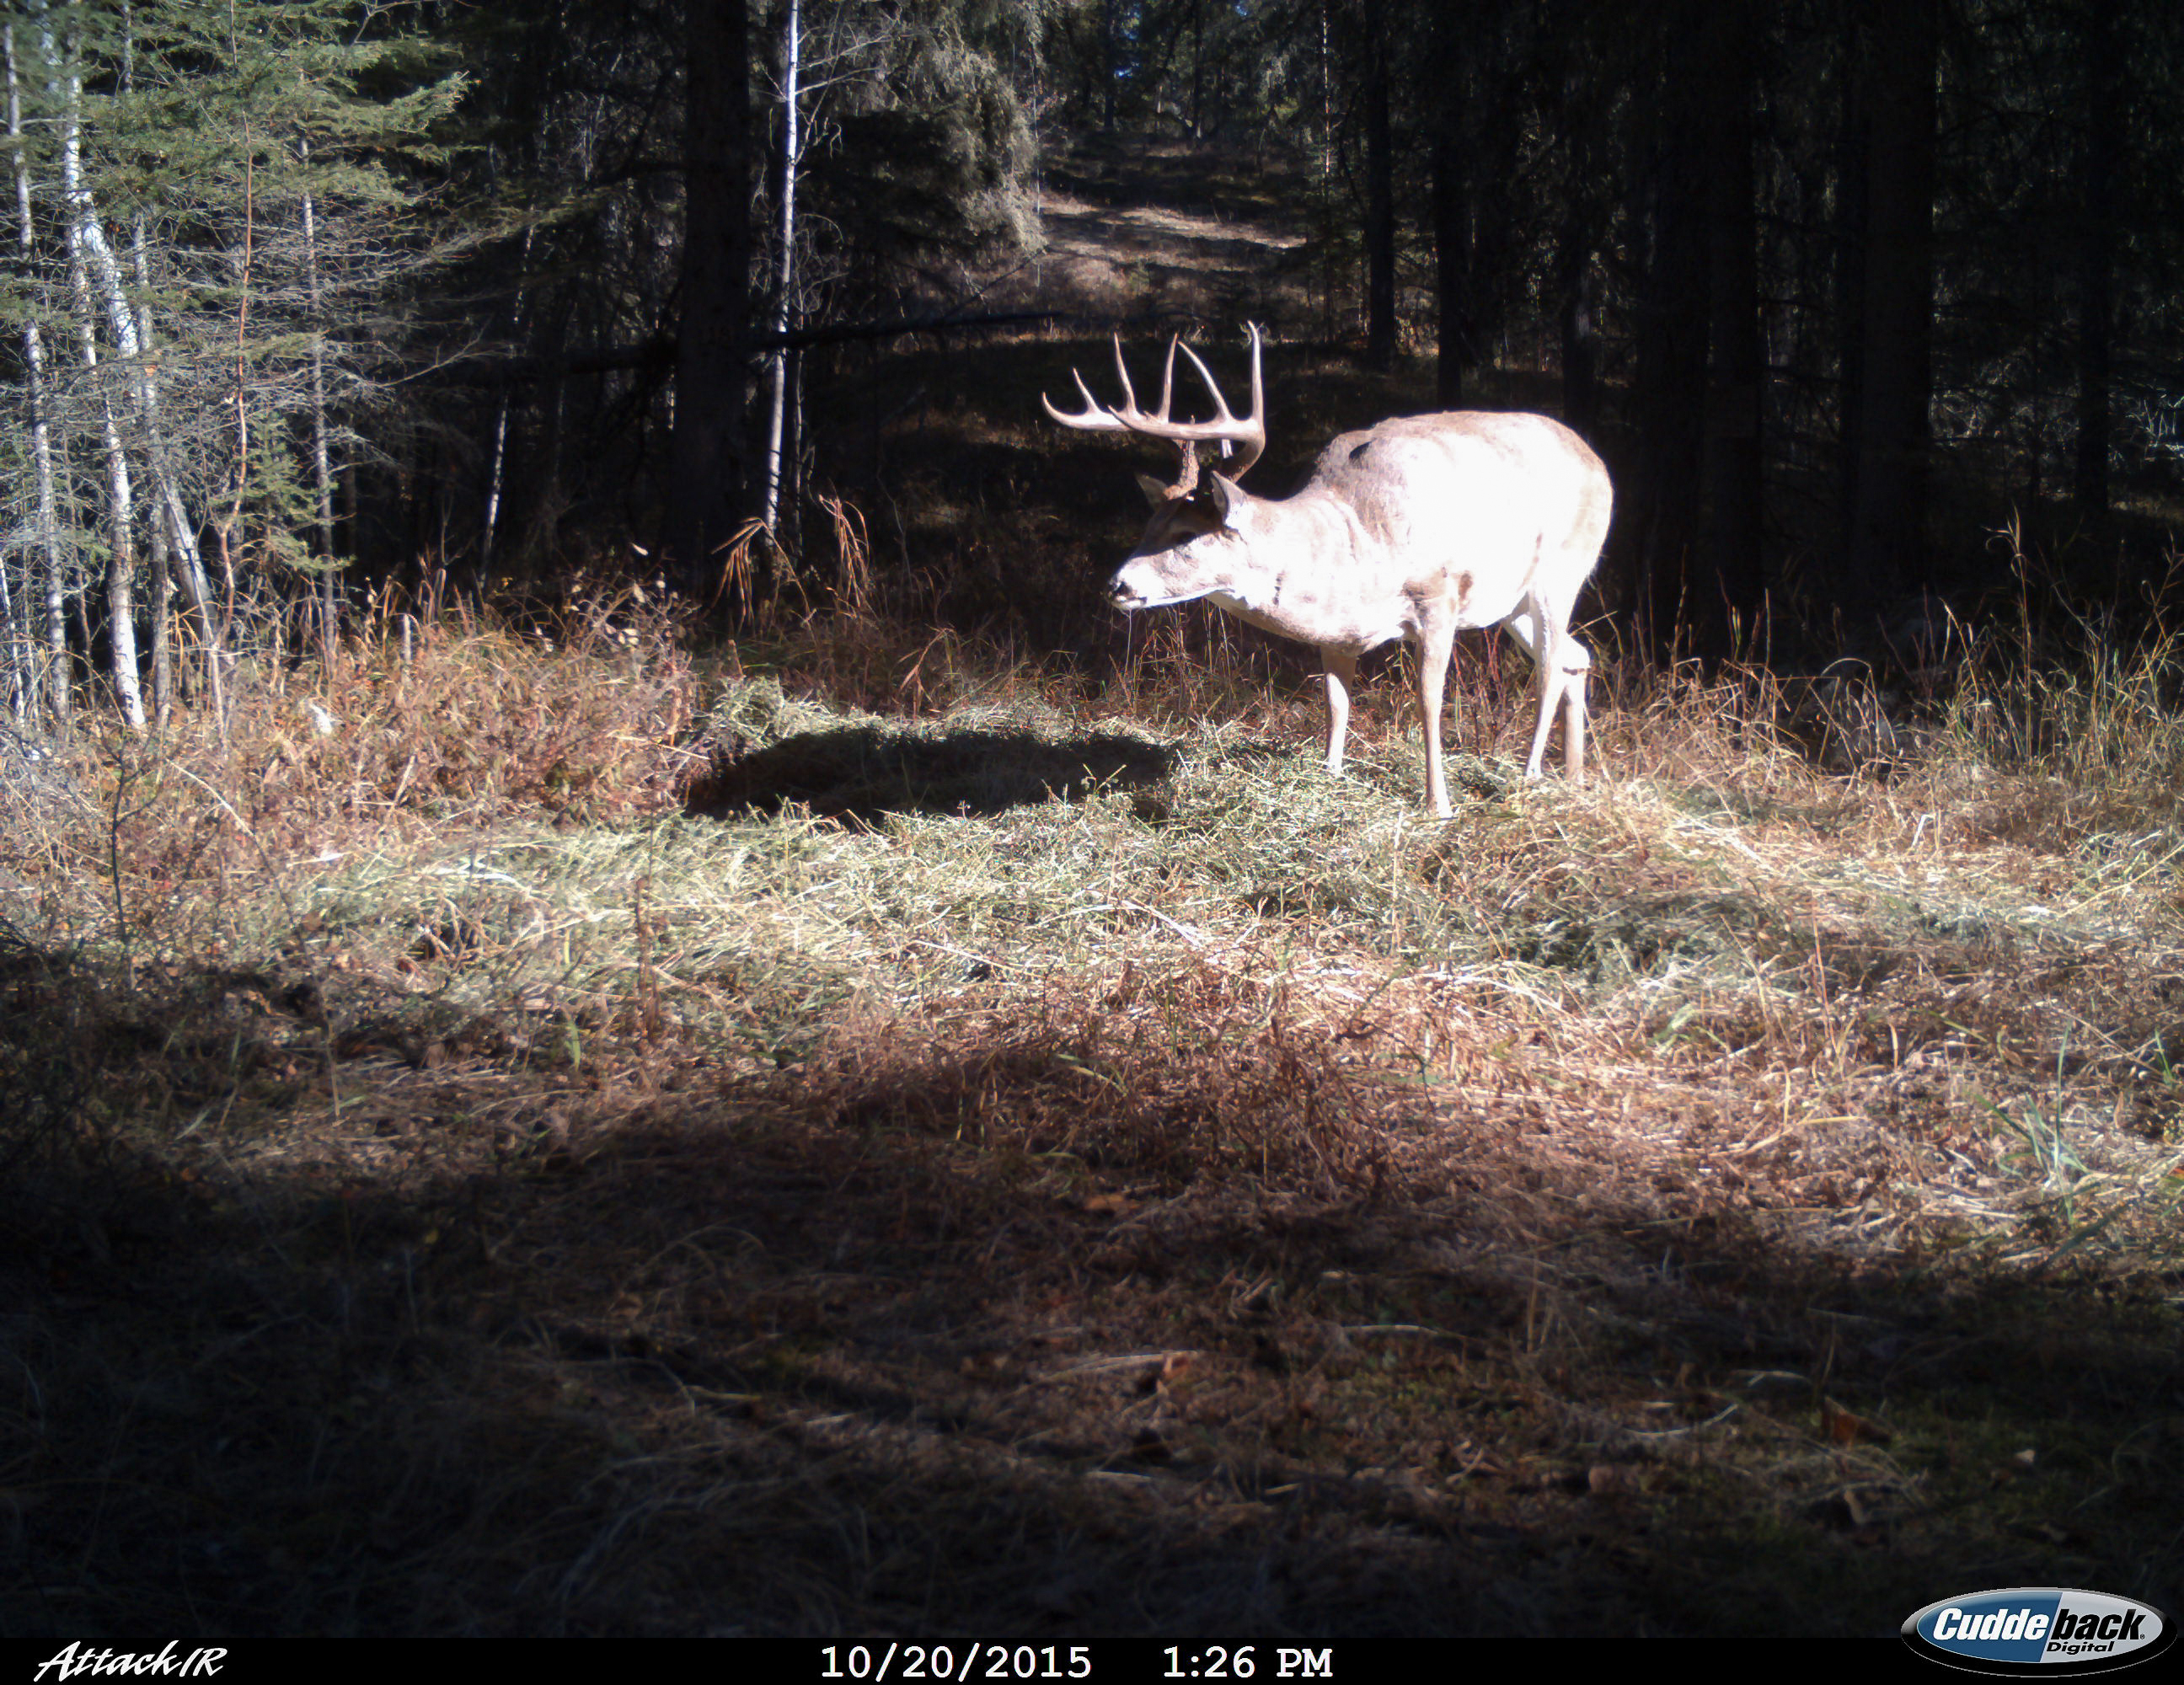 Recent Trail cam pics